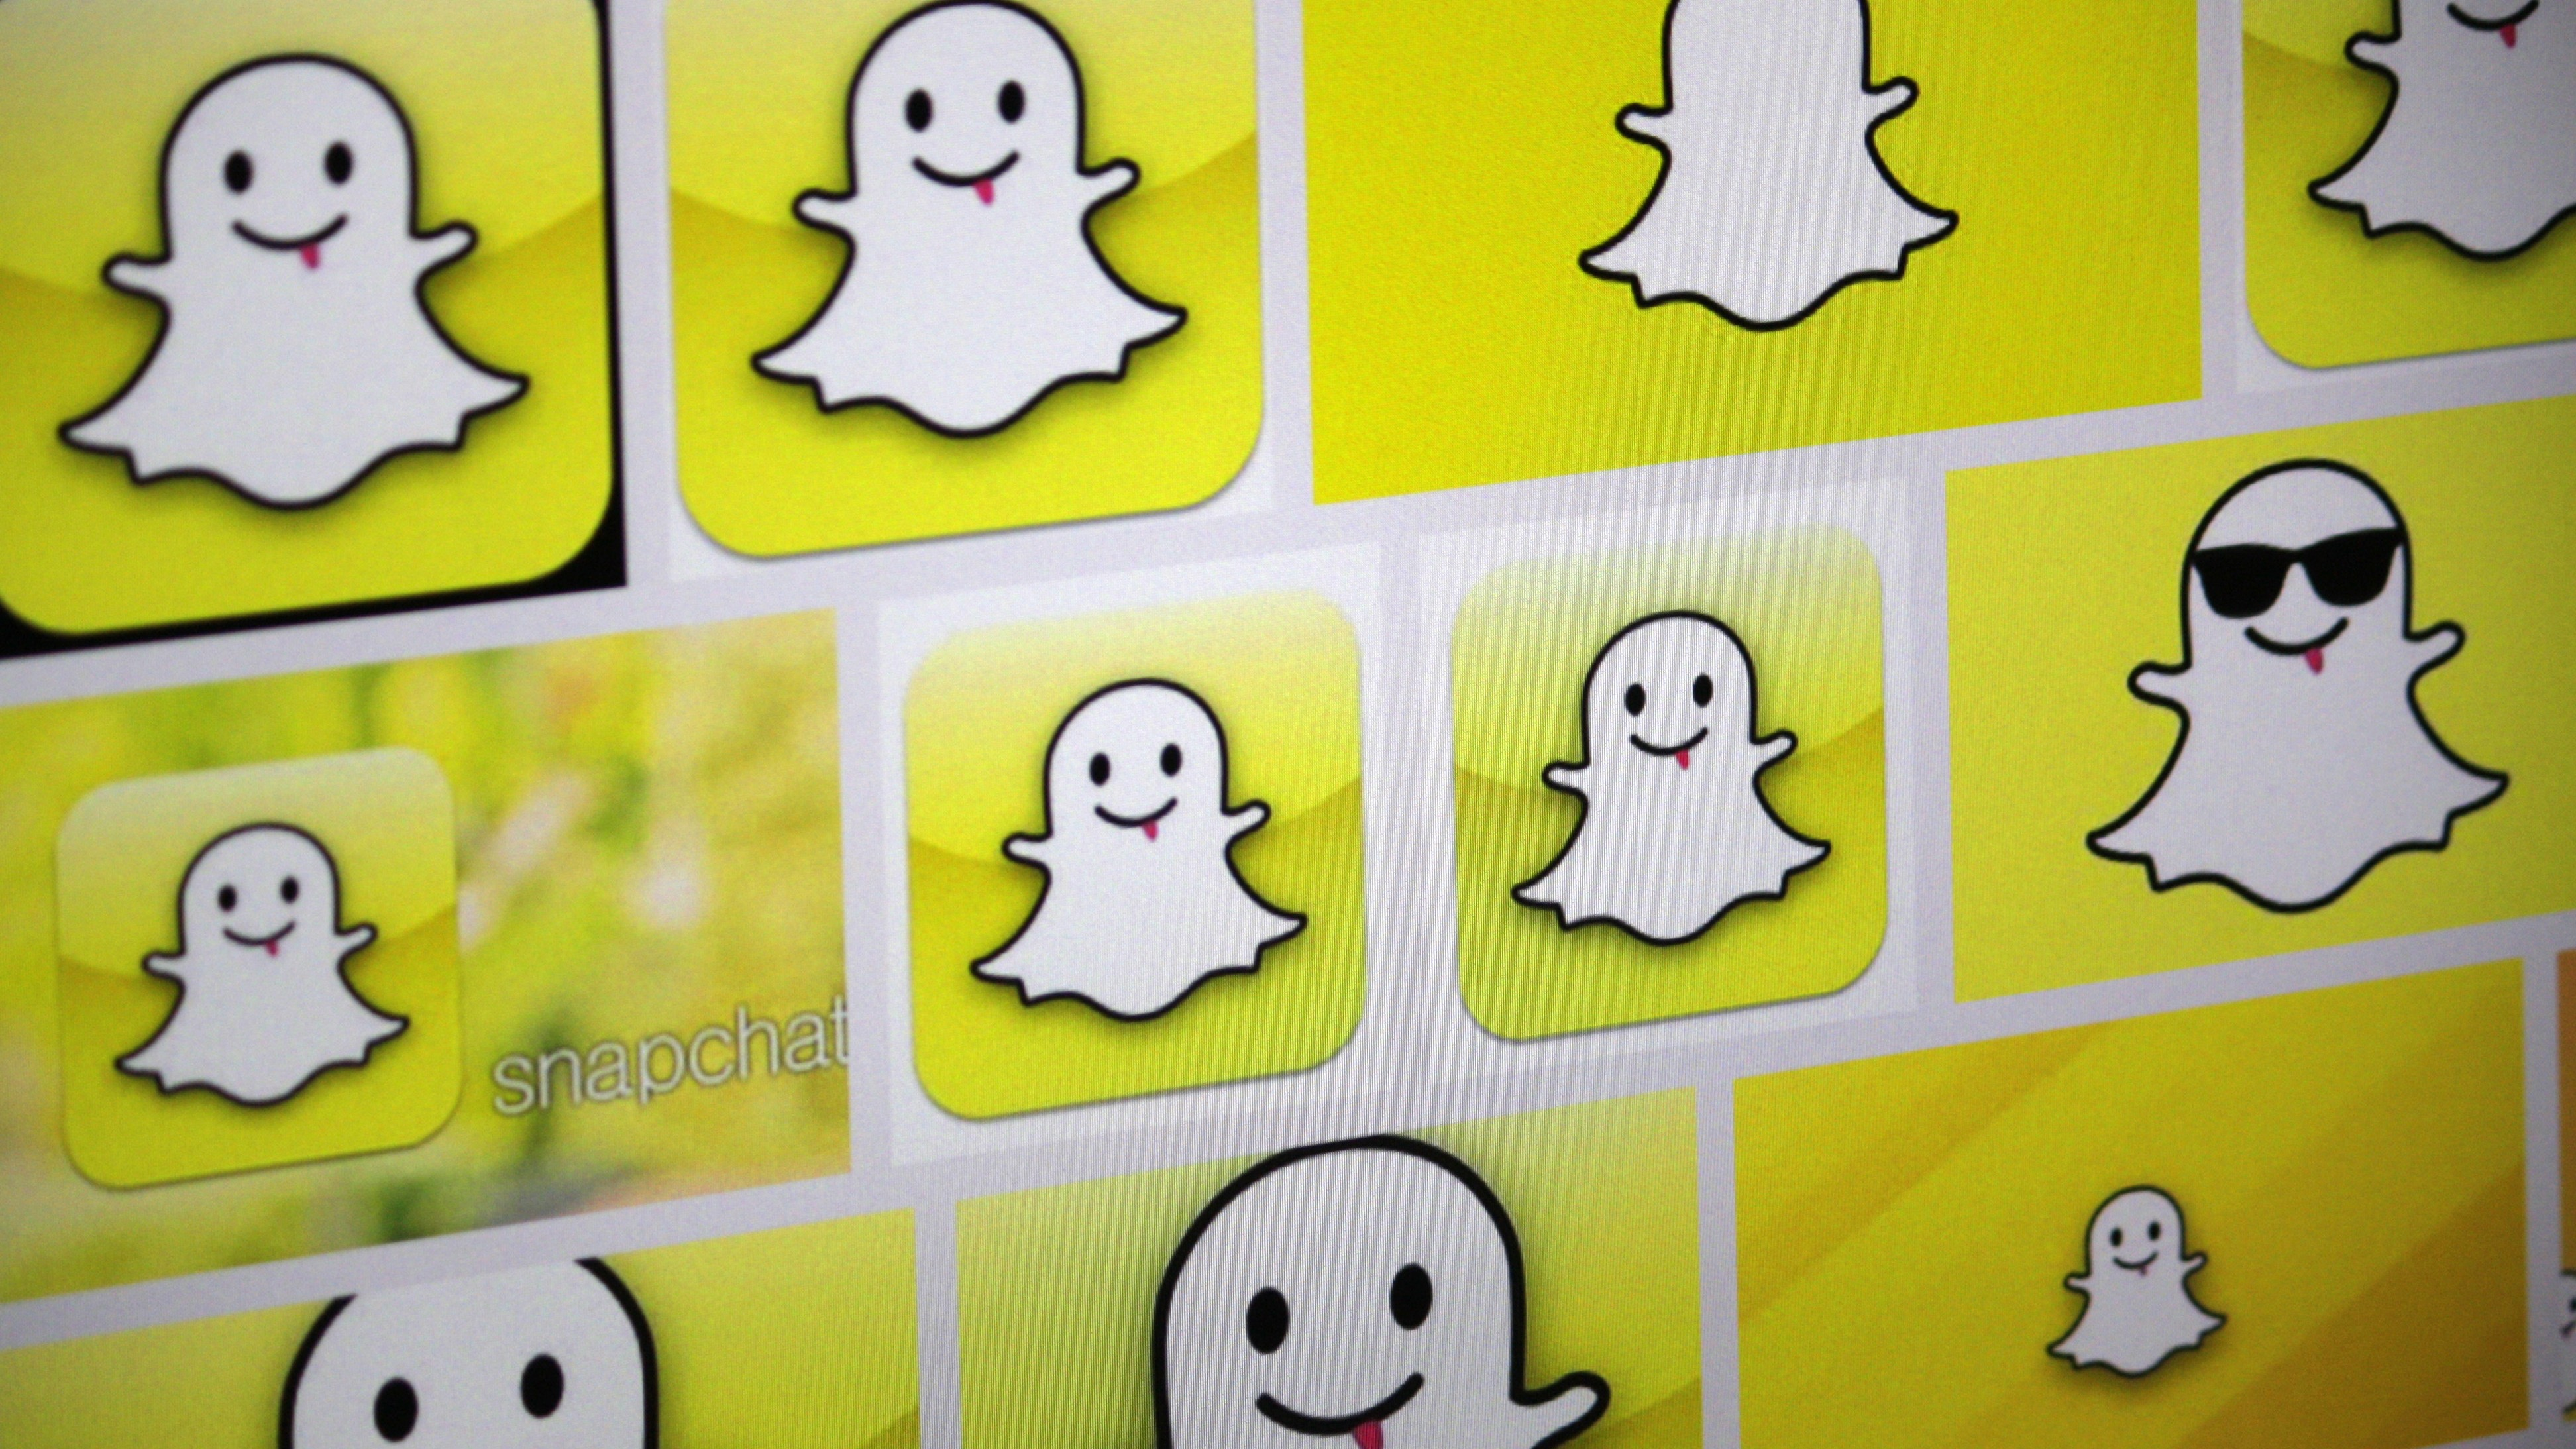 Hacked Snapchat Website Demands Bitcoin to Talk About Getting Hacked